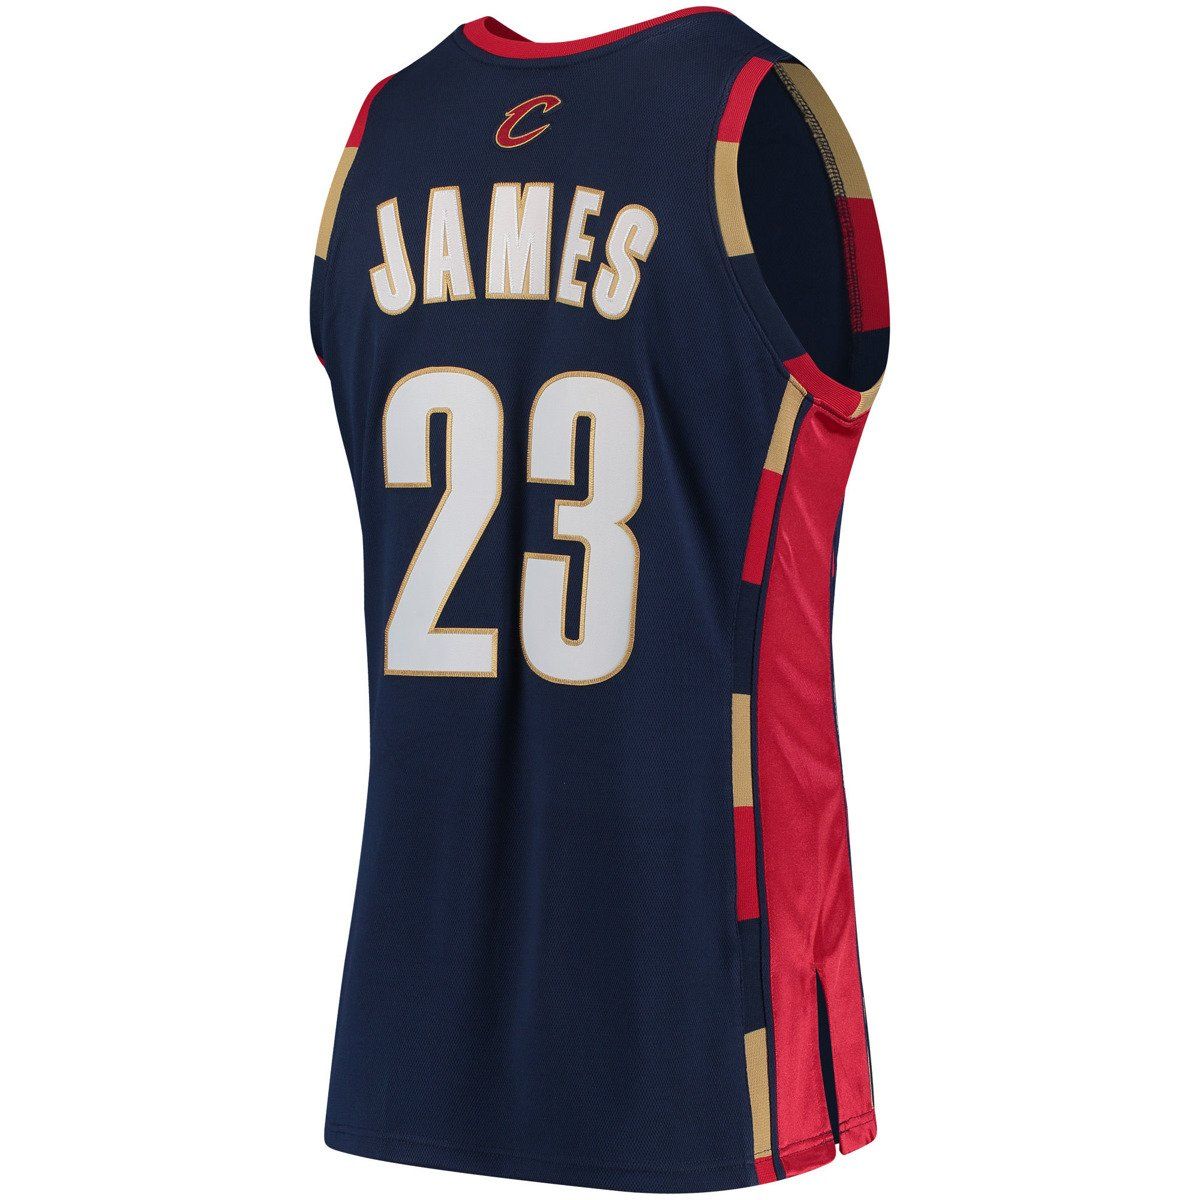 official photos a21e9 9c0ab Mitchell & Ness LeBron James 2008-09 NBA Hardwood Classics Authentic  Cleveland Cavaliers Jersey